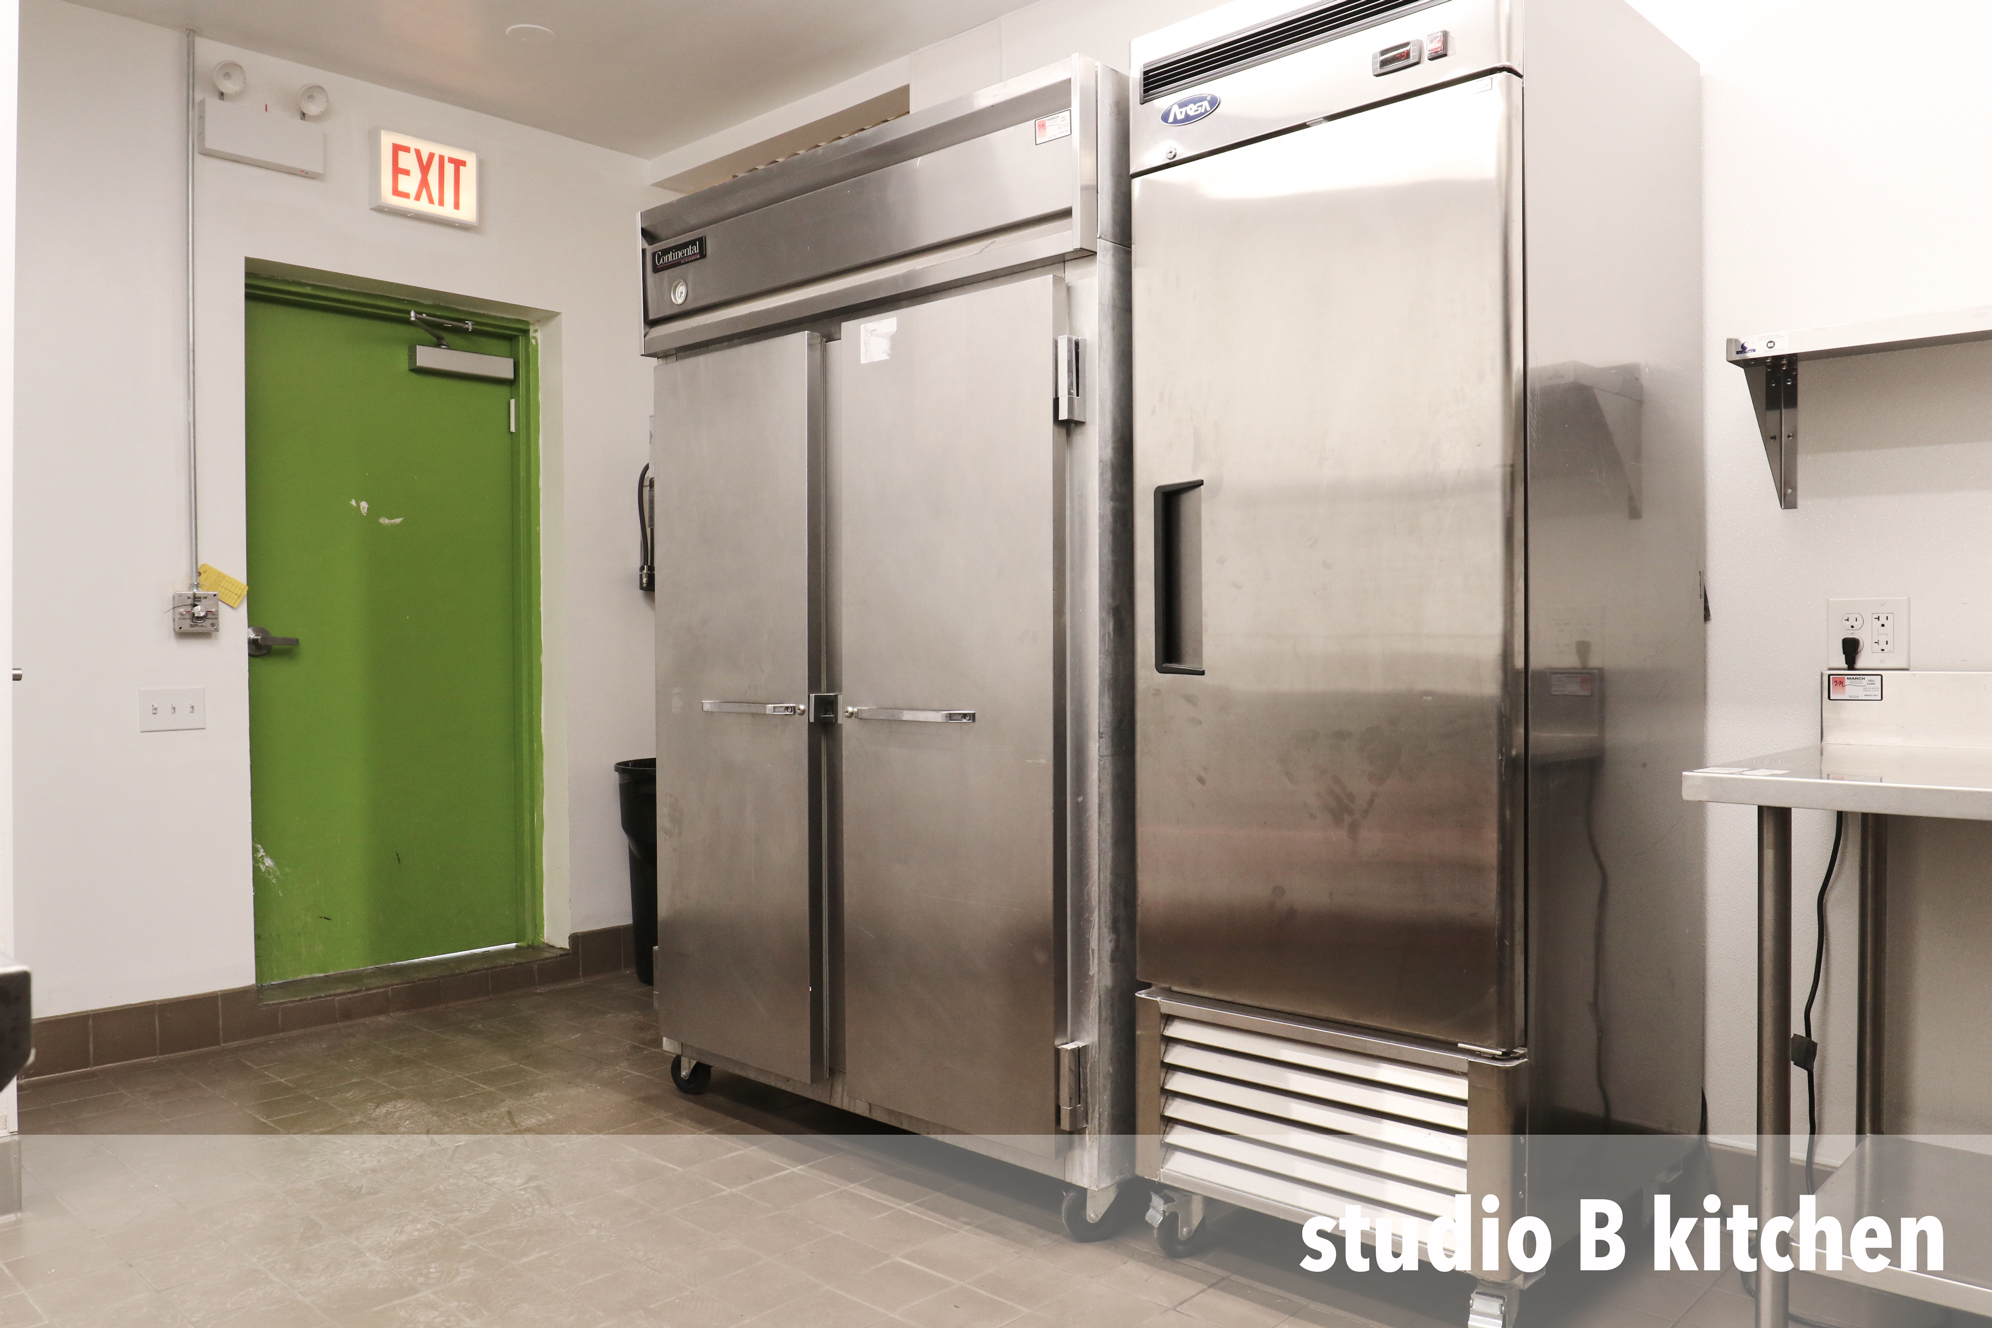 studio-B-kitchen-2.png